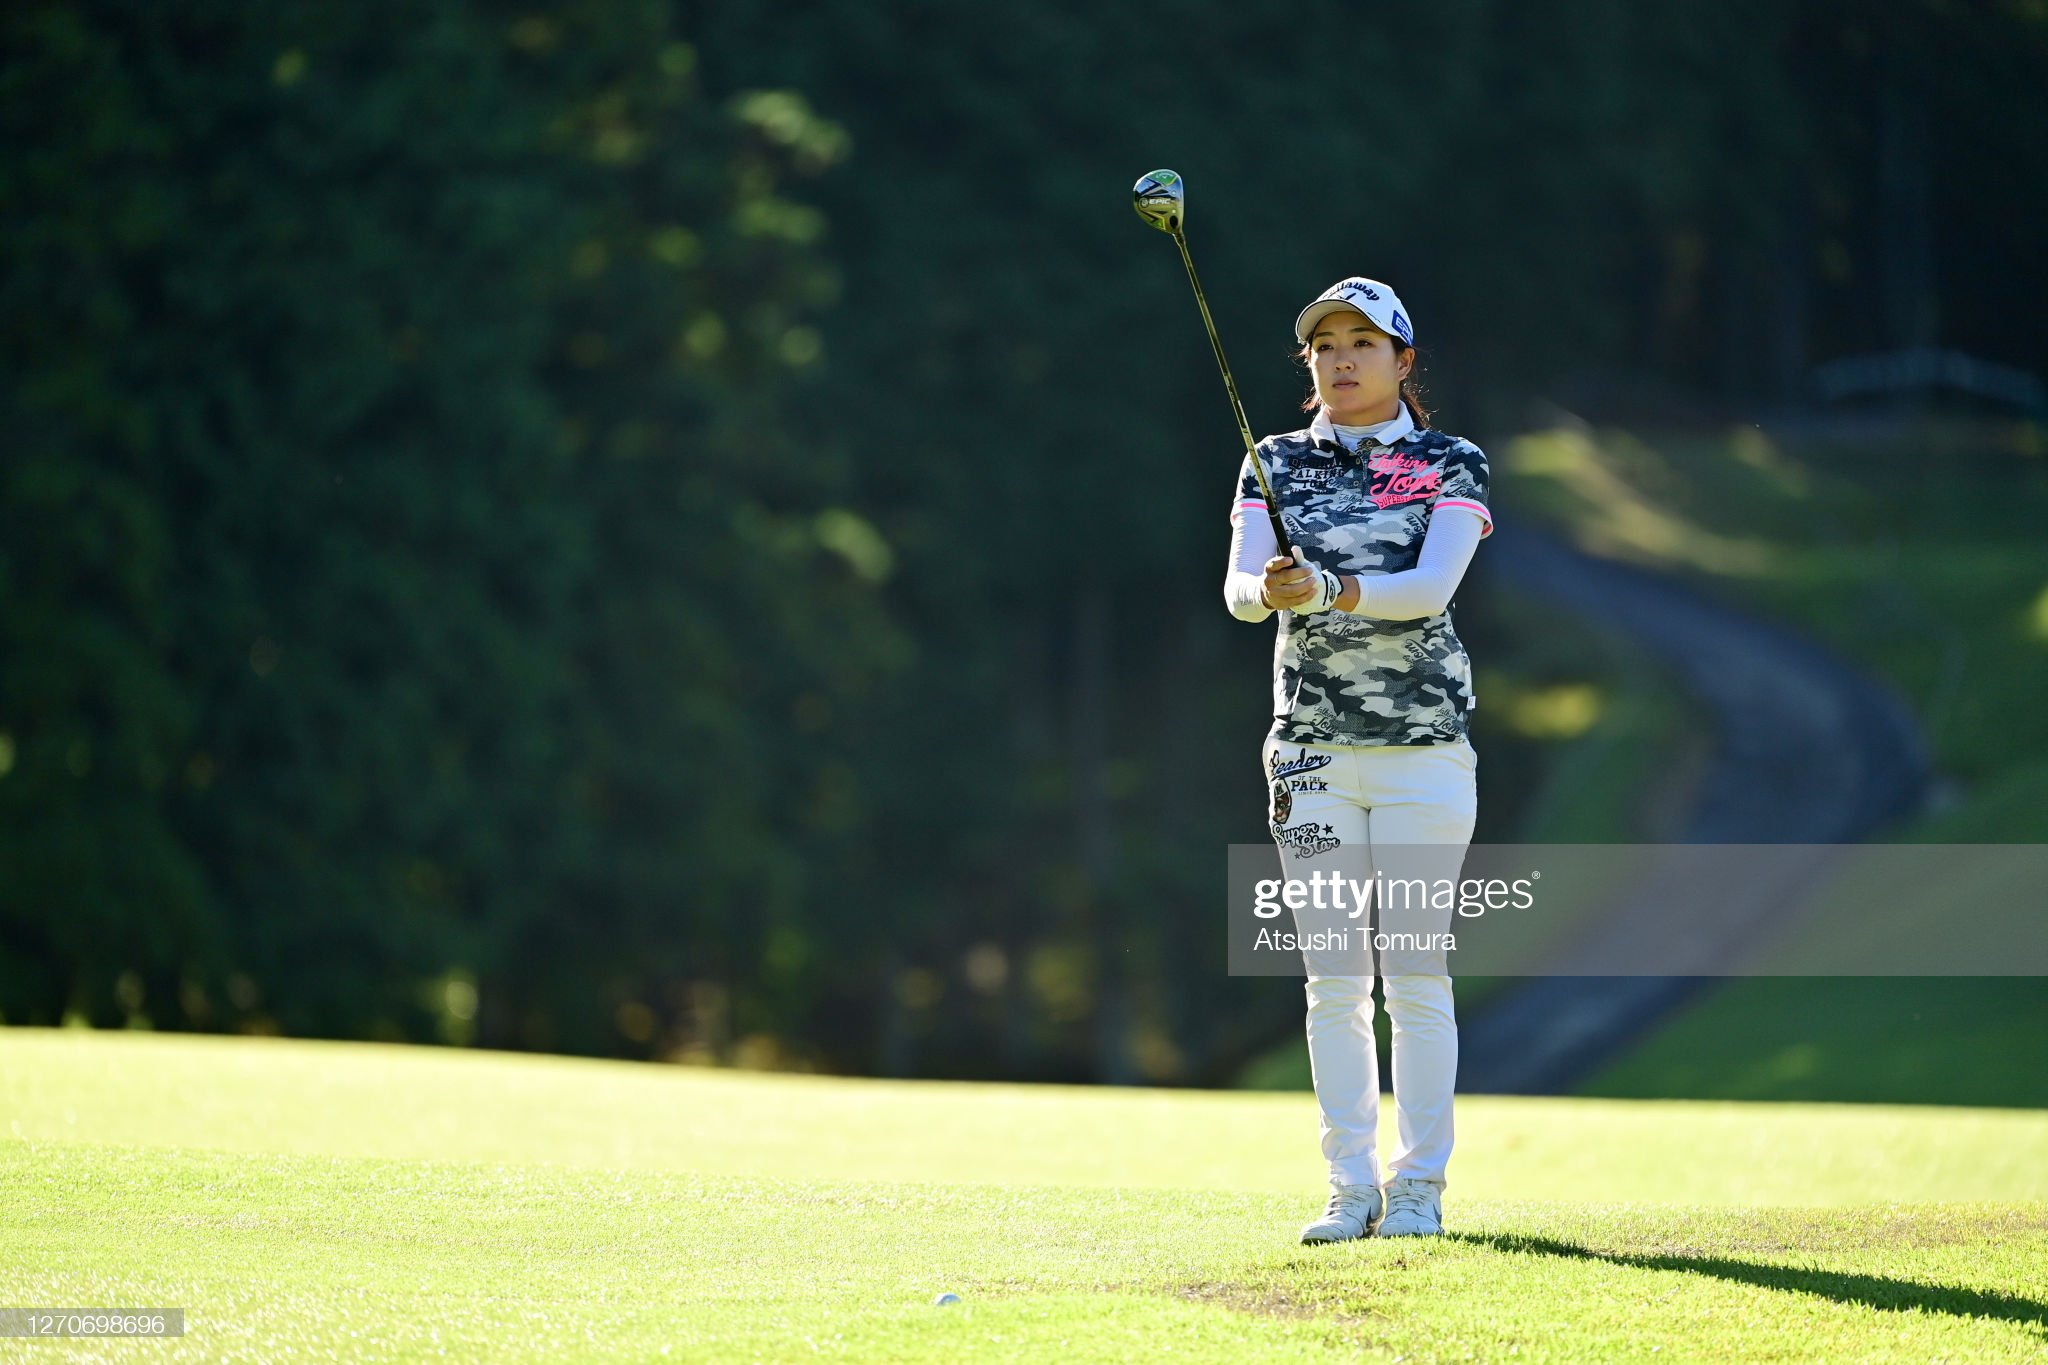 https://media.gettyimages.com/photos/solar-lee-of-south-korea-prepares-for-her-second-shot-on-the-2nd-hole-picture-id1270698696?s=2048x2048